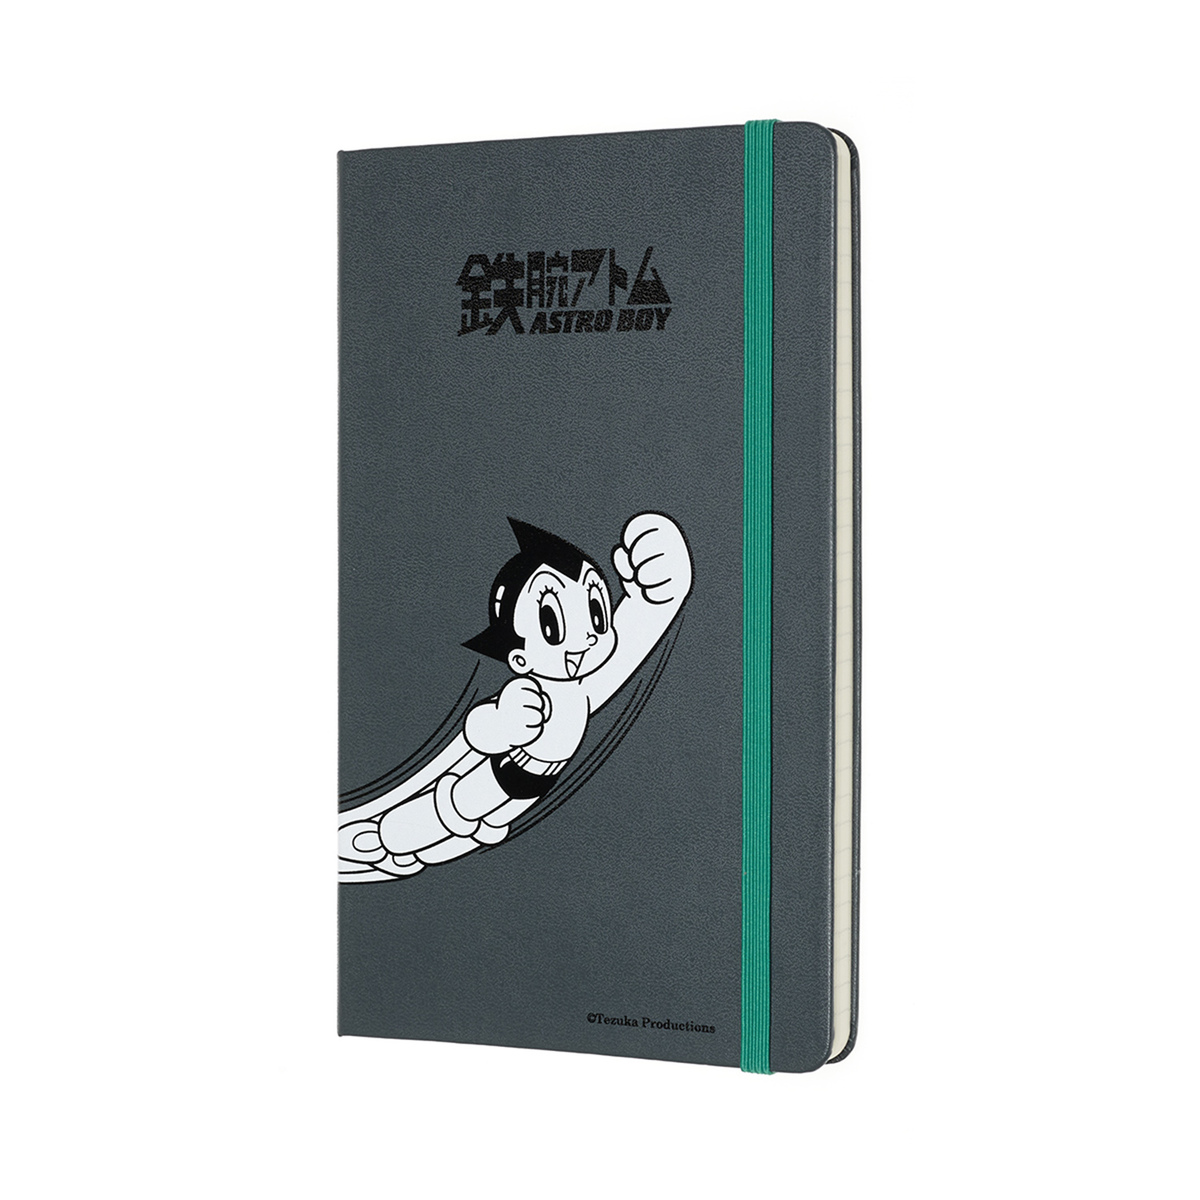 Astro Boy Limited Edition Notebook - Dark Grey, Large, Ruled, Hard Cover